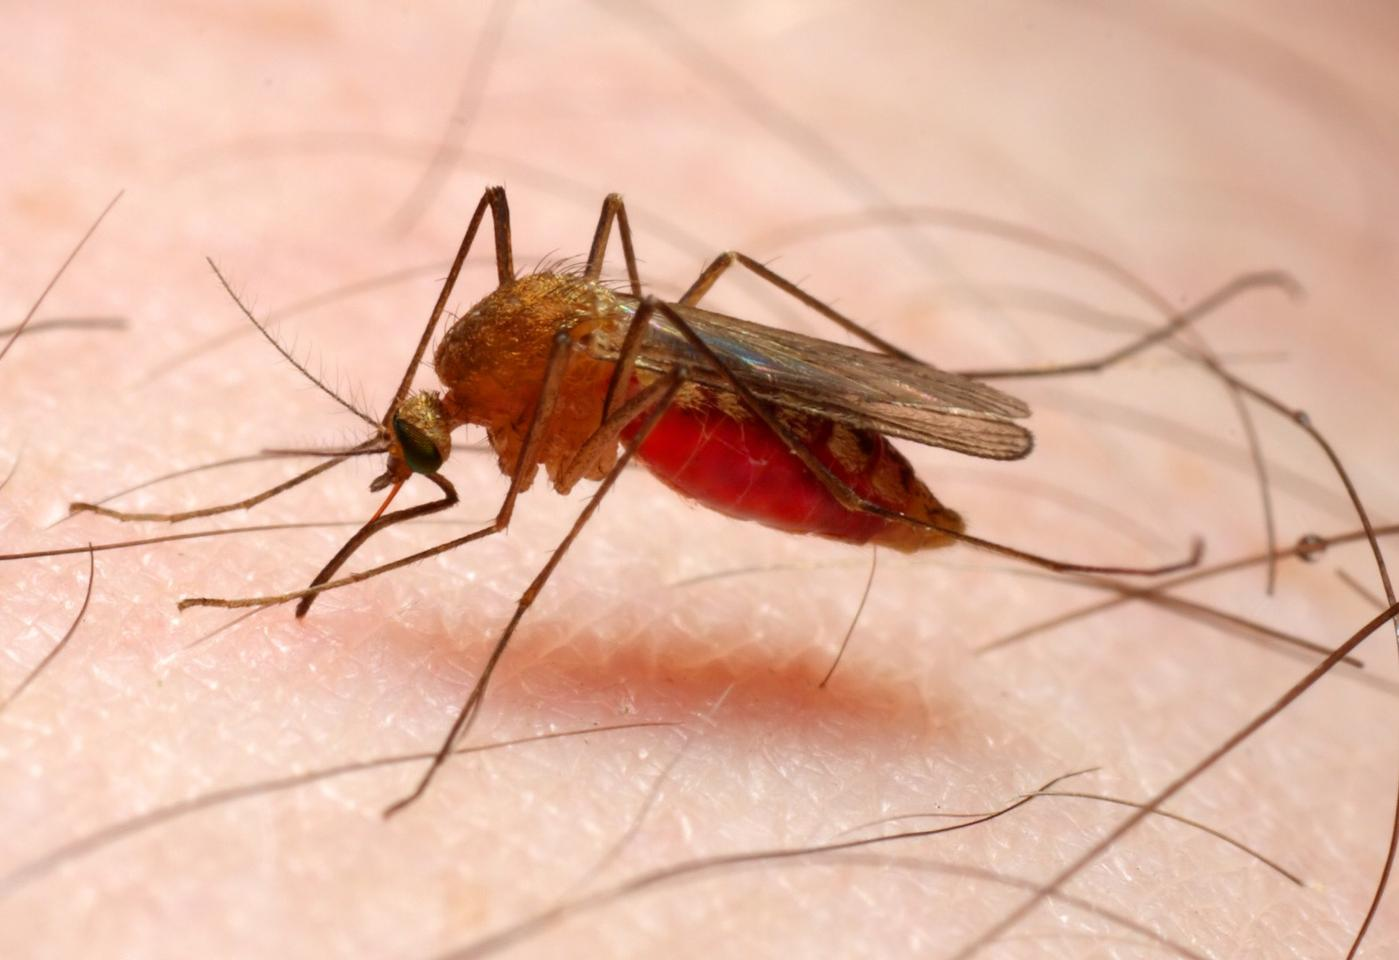 The bacteria that produce the toxin are believed to have evolved alongside the Anopheles mosquito